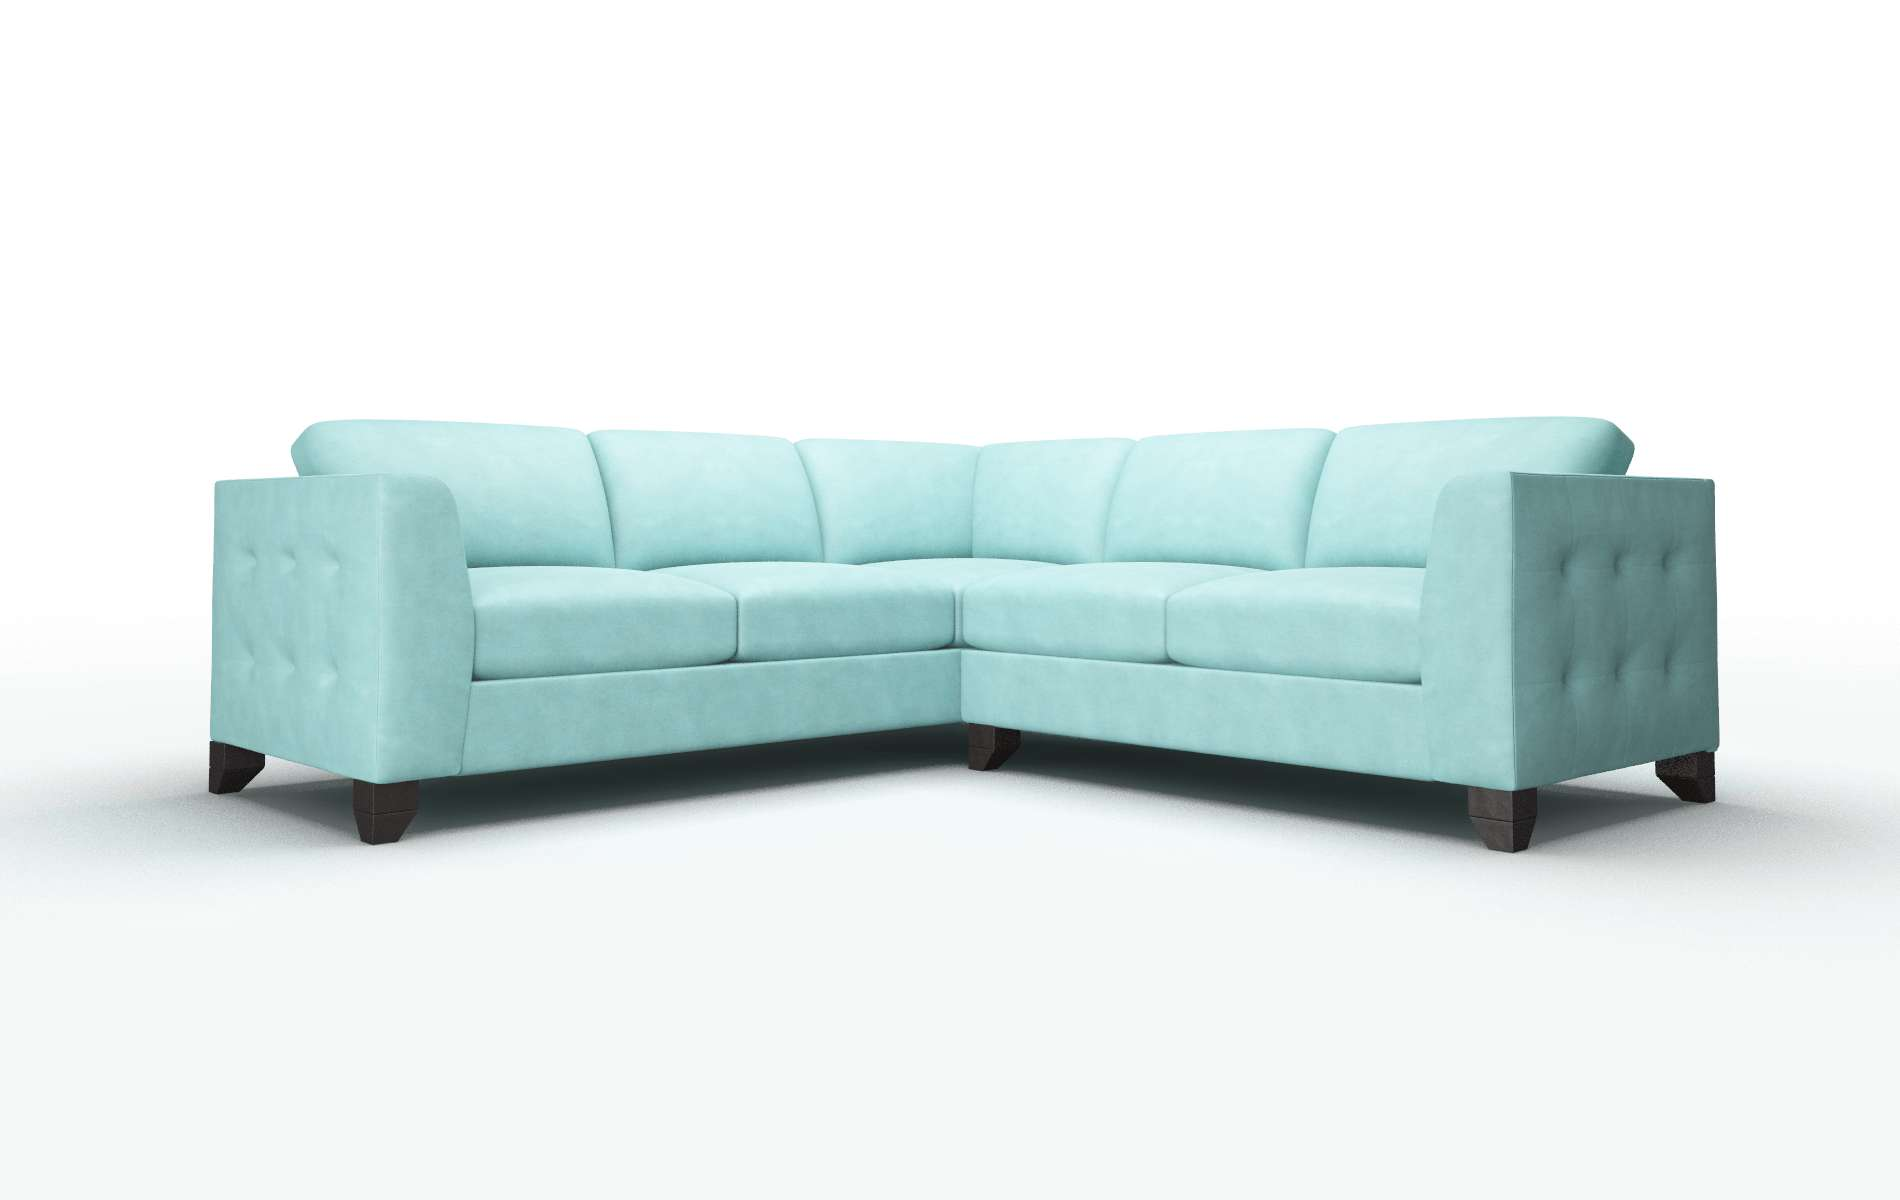 Paris Bella Caribbean Sectional espresso legs 1